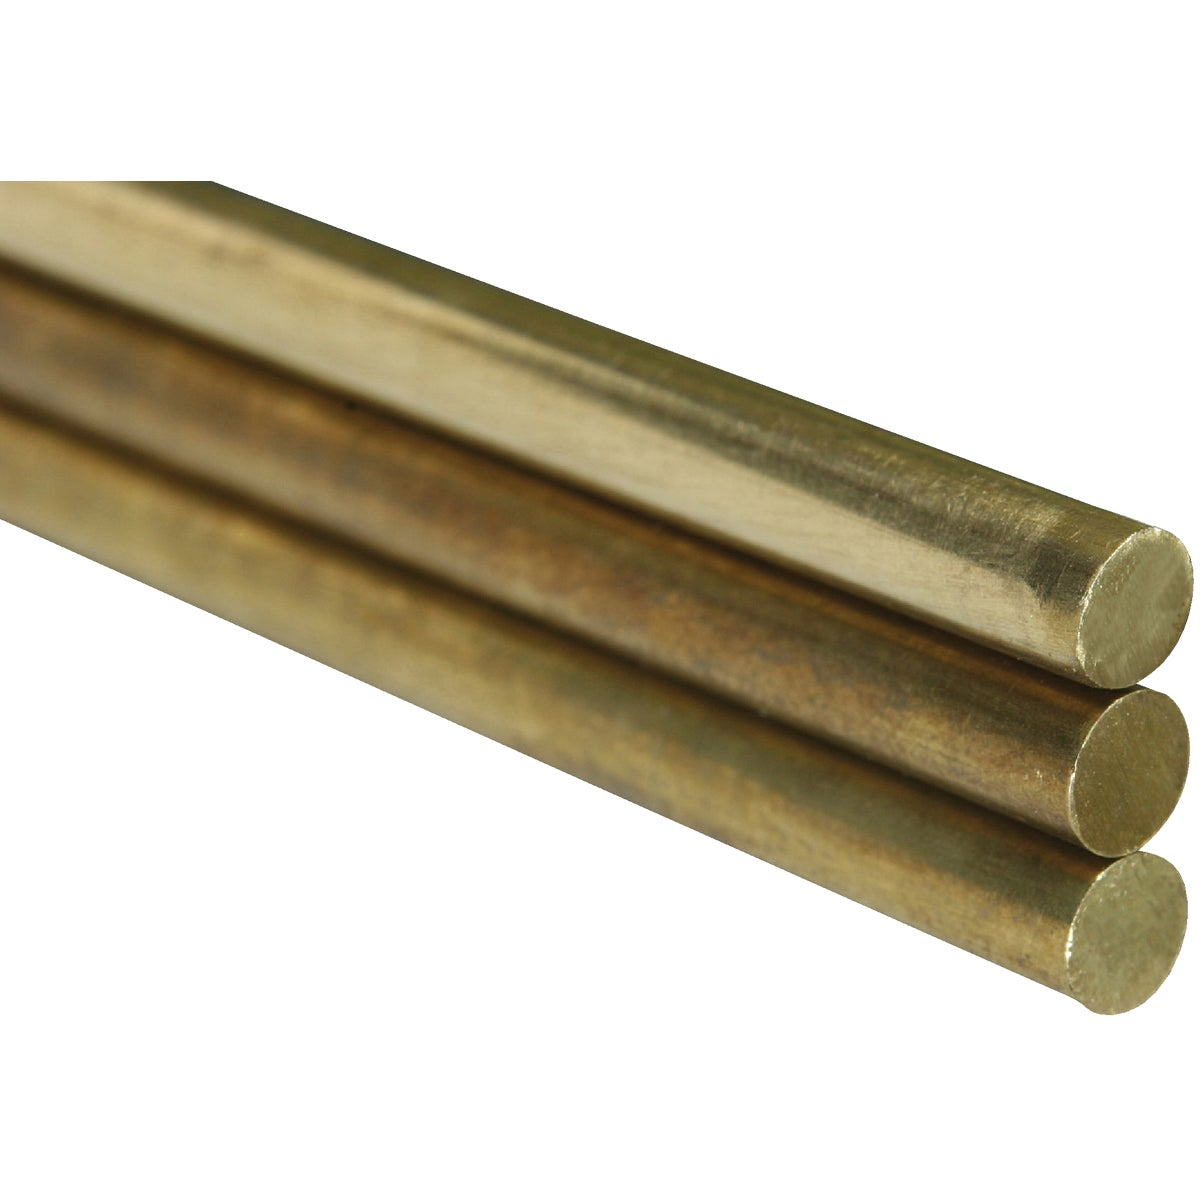 3/32X36 SOLID BRASS ROD - 1161 by K&s Precision Metals